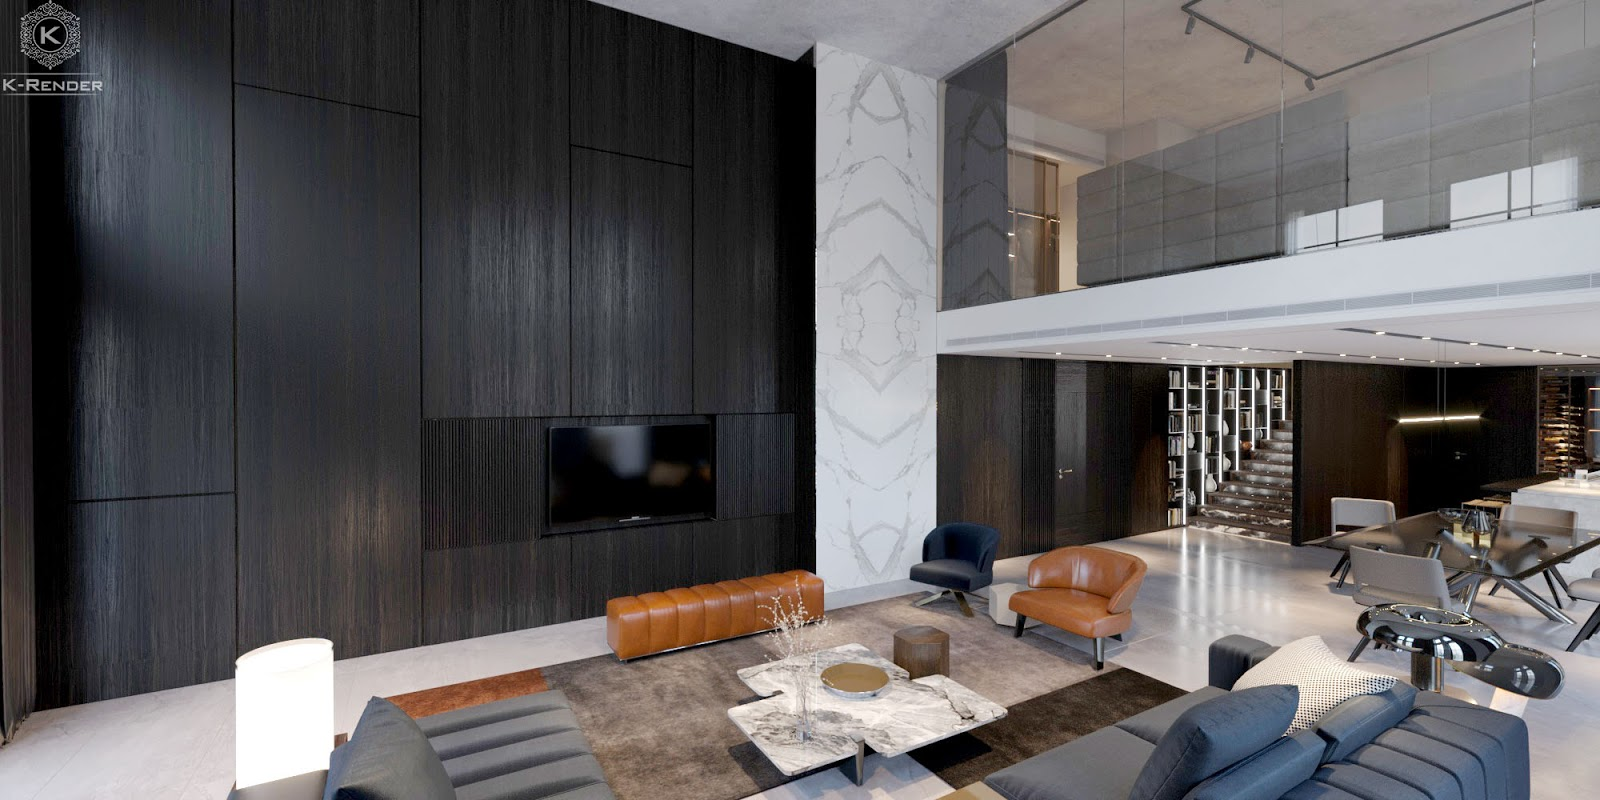 a-wide-interior-space-of-k-render-tplace-project-2